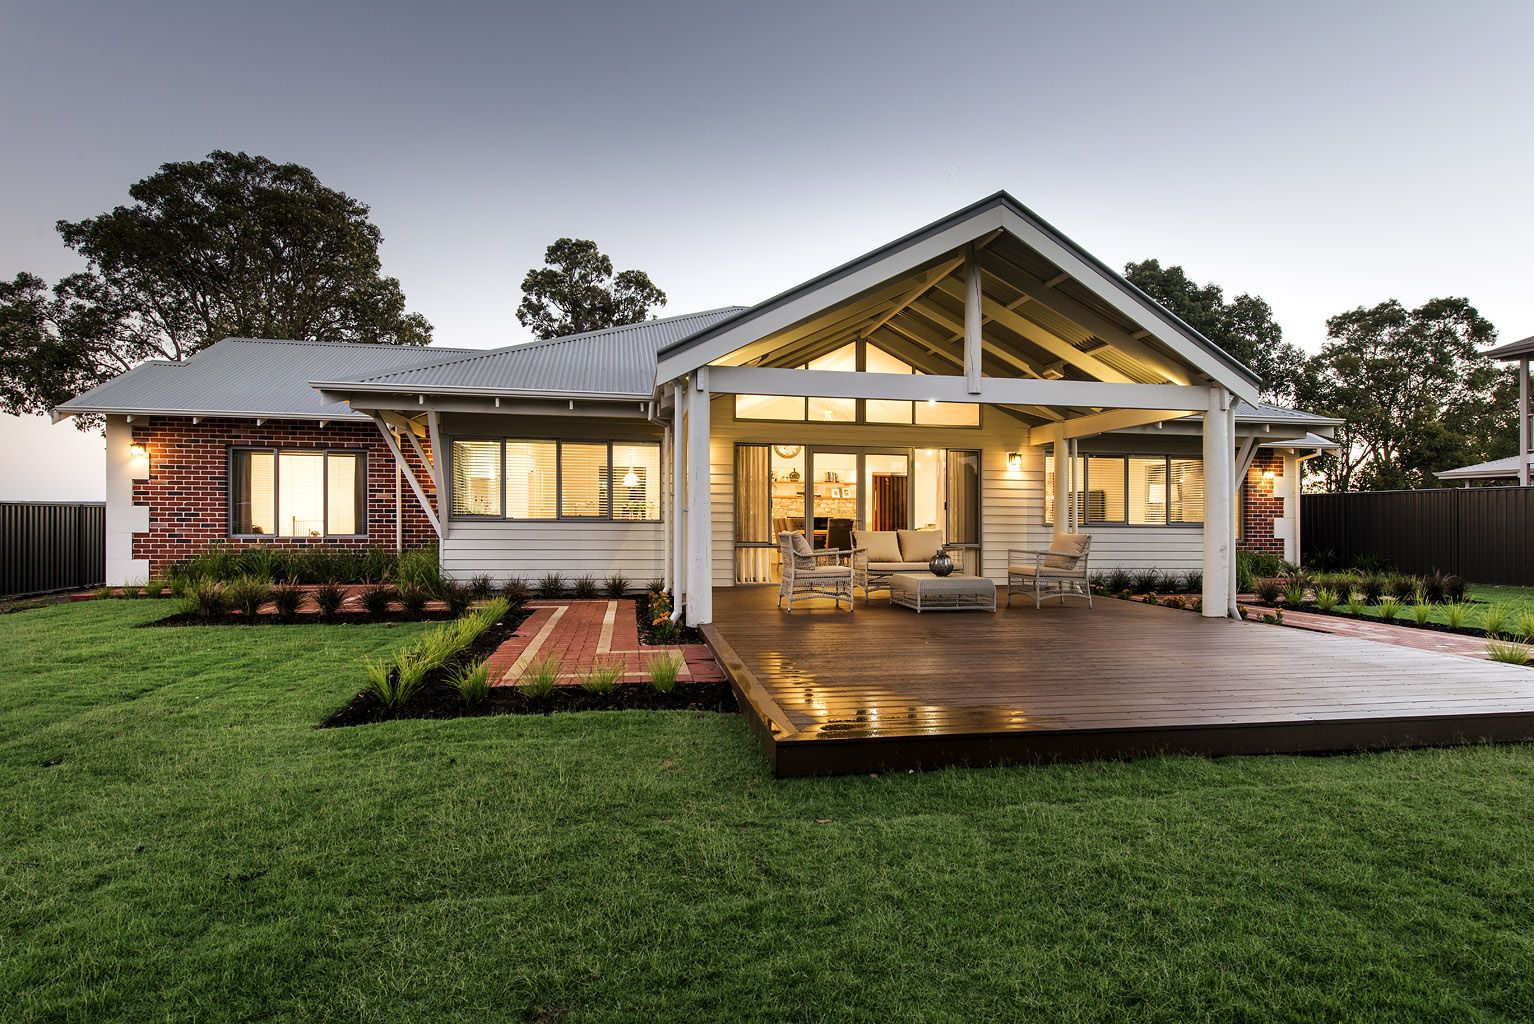 Love This Country Home Design With Tall Living Area Ceiling And